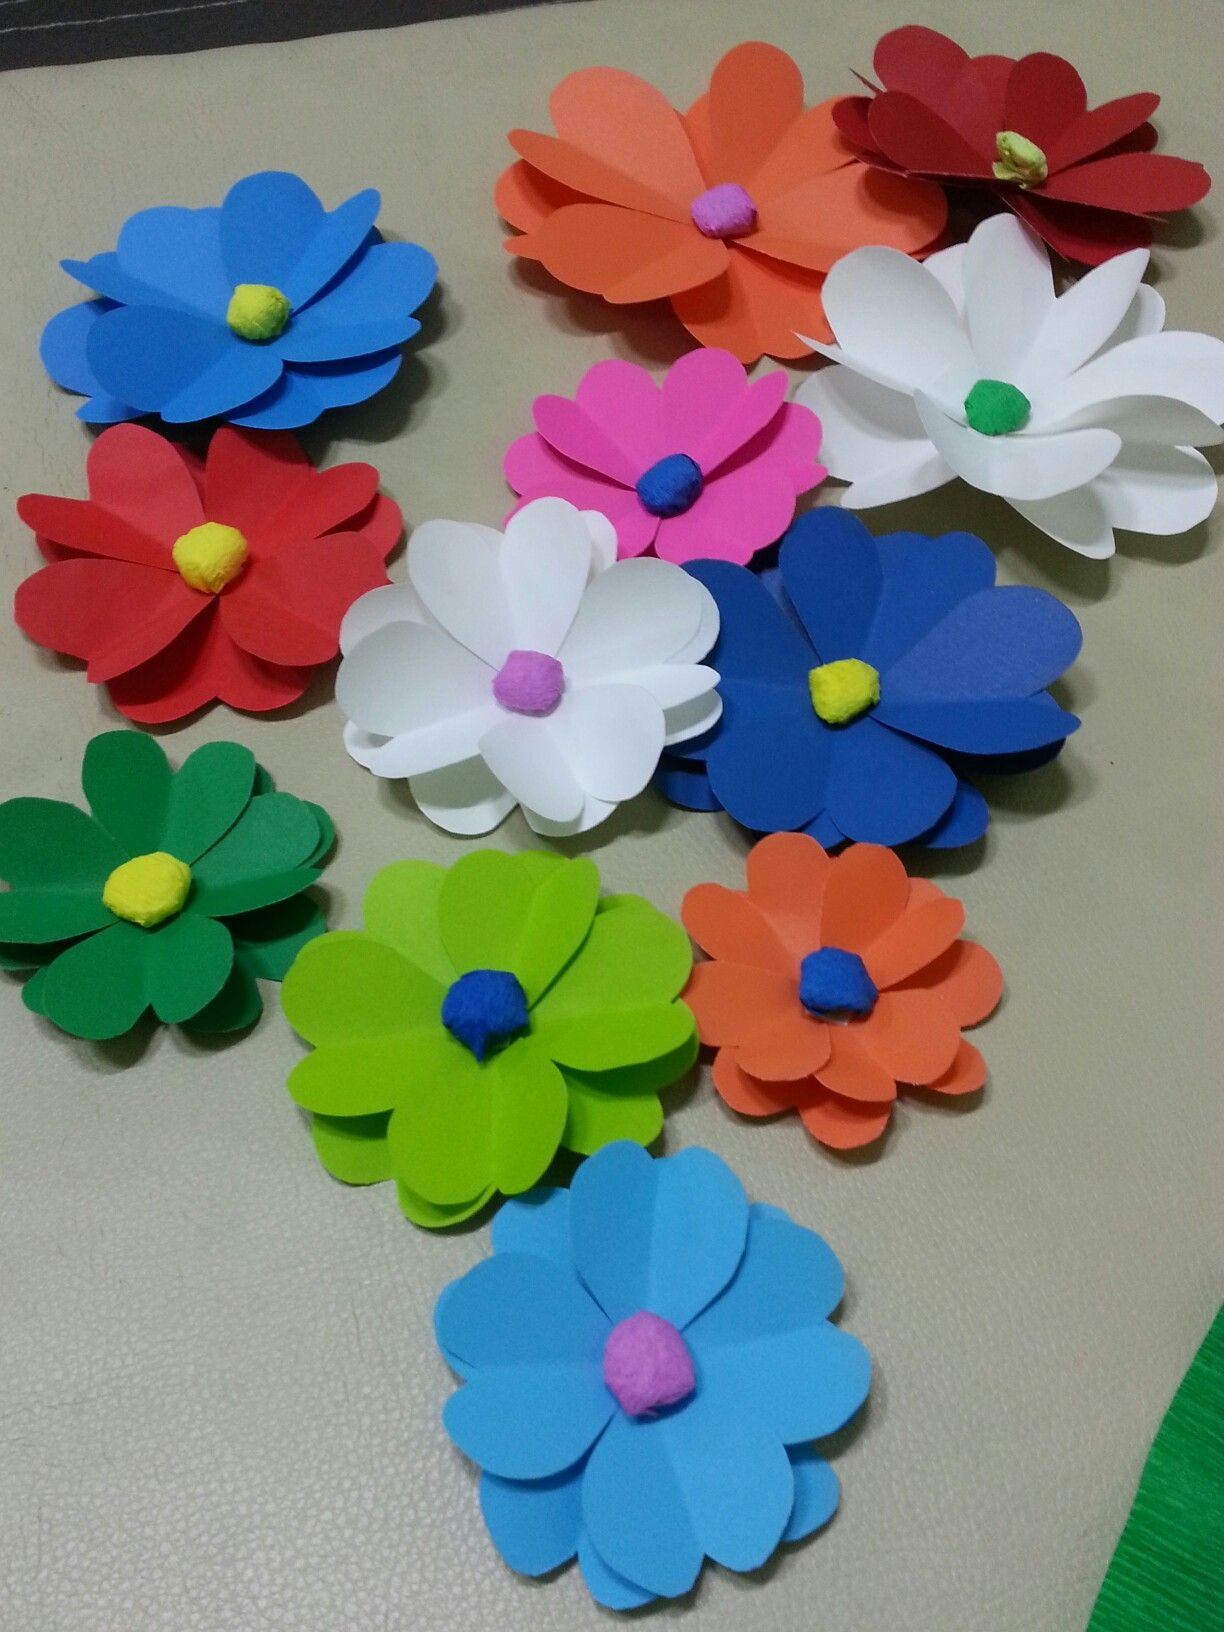 Pin By Paper Crafts On Paper Flowers Construction Paper Flowers